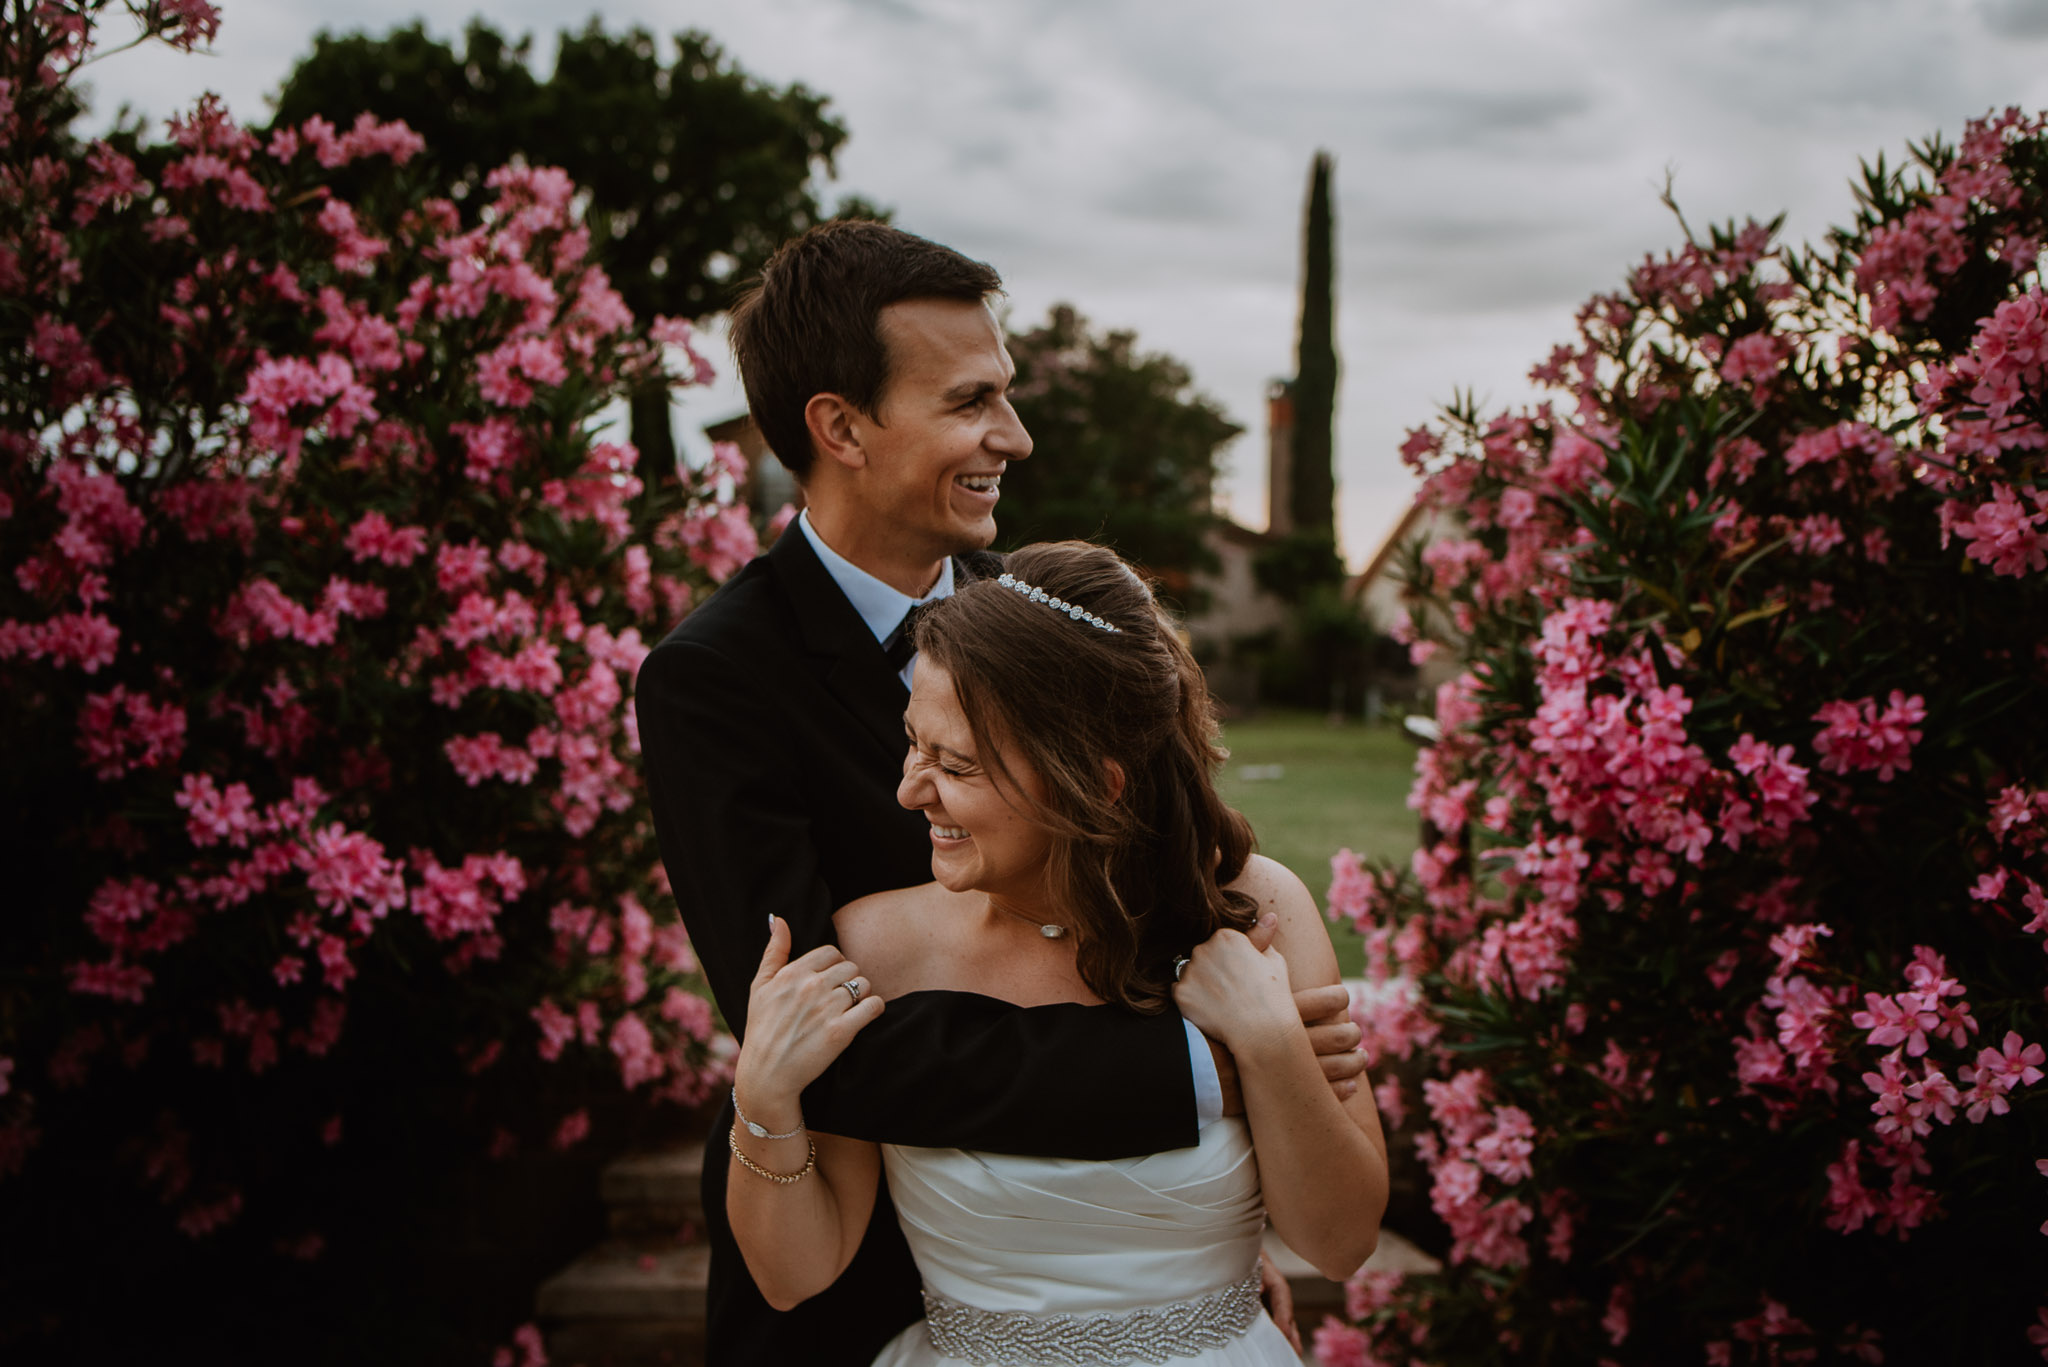 STRESS FREE WEDDING - I go over some quick tips and ideas on how to make your wedding day less stressful.